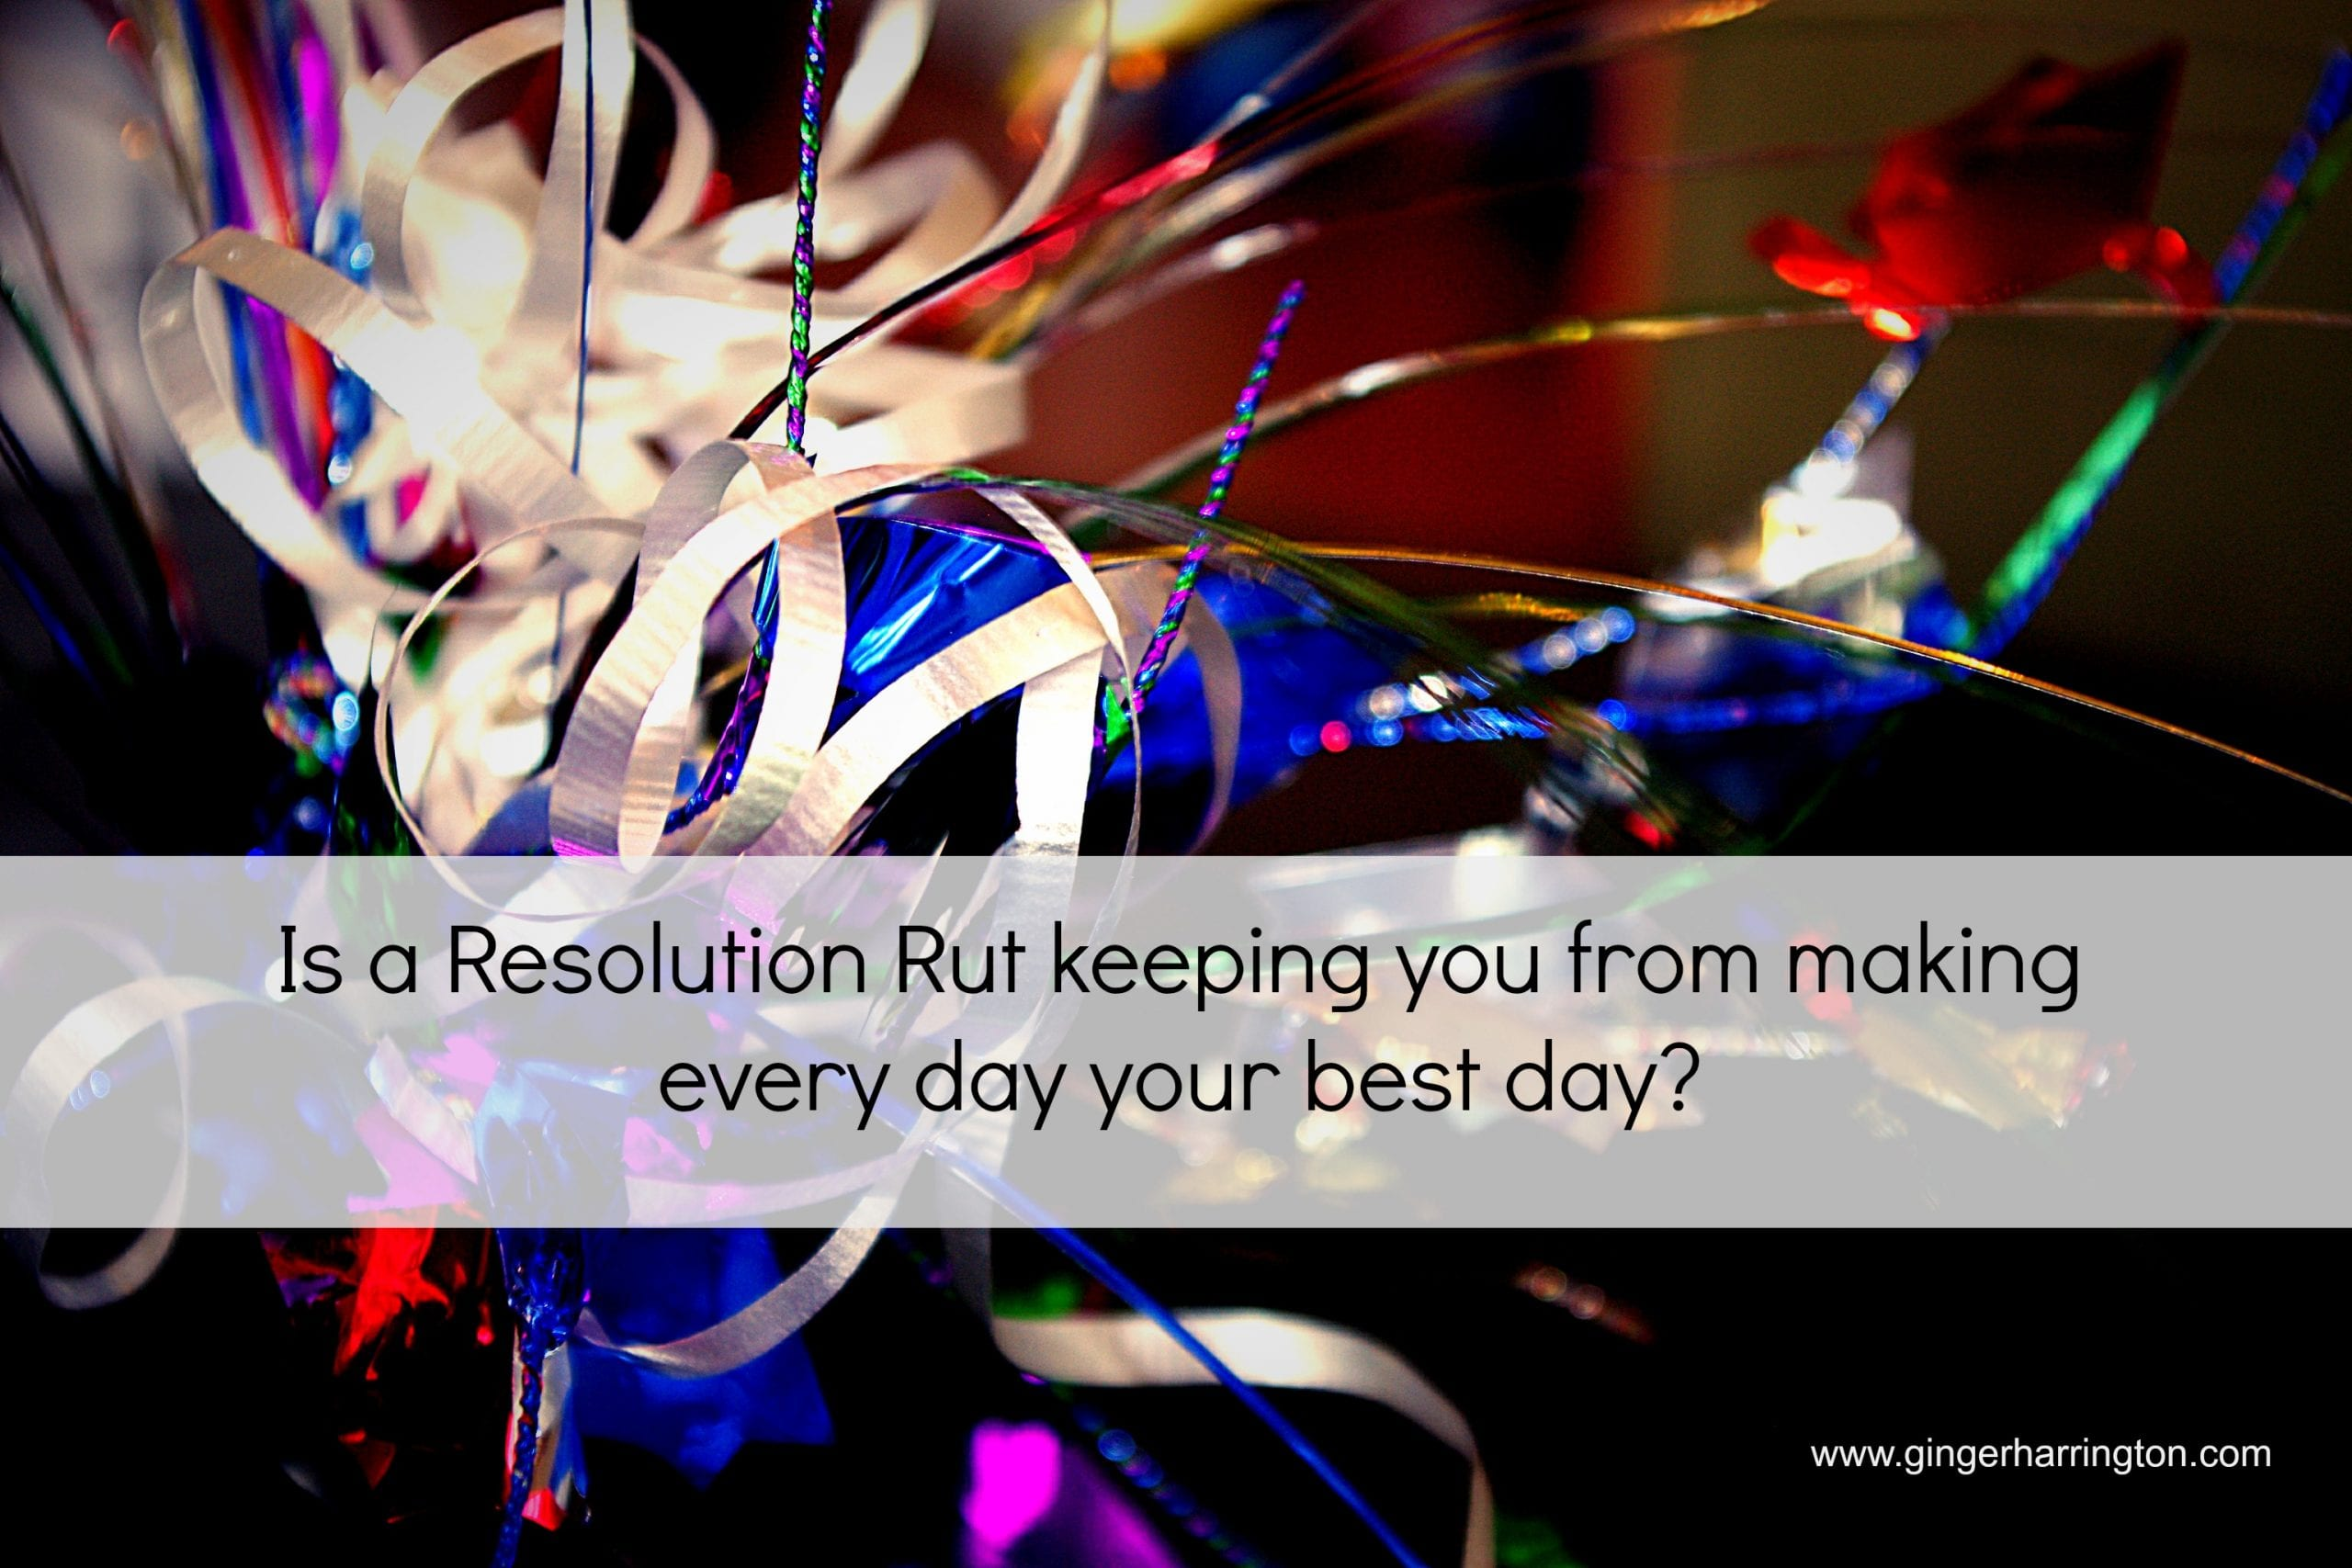 Two Common Resolution Ruts that Could be Holding You Back